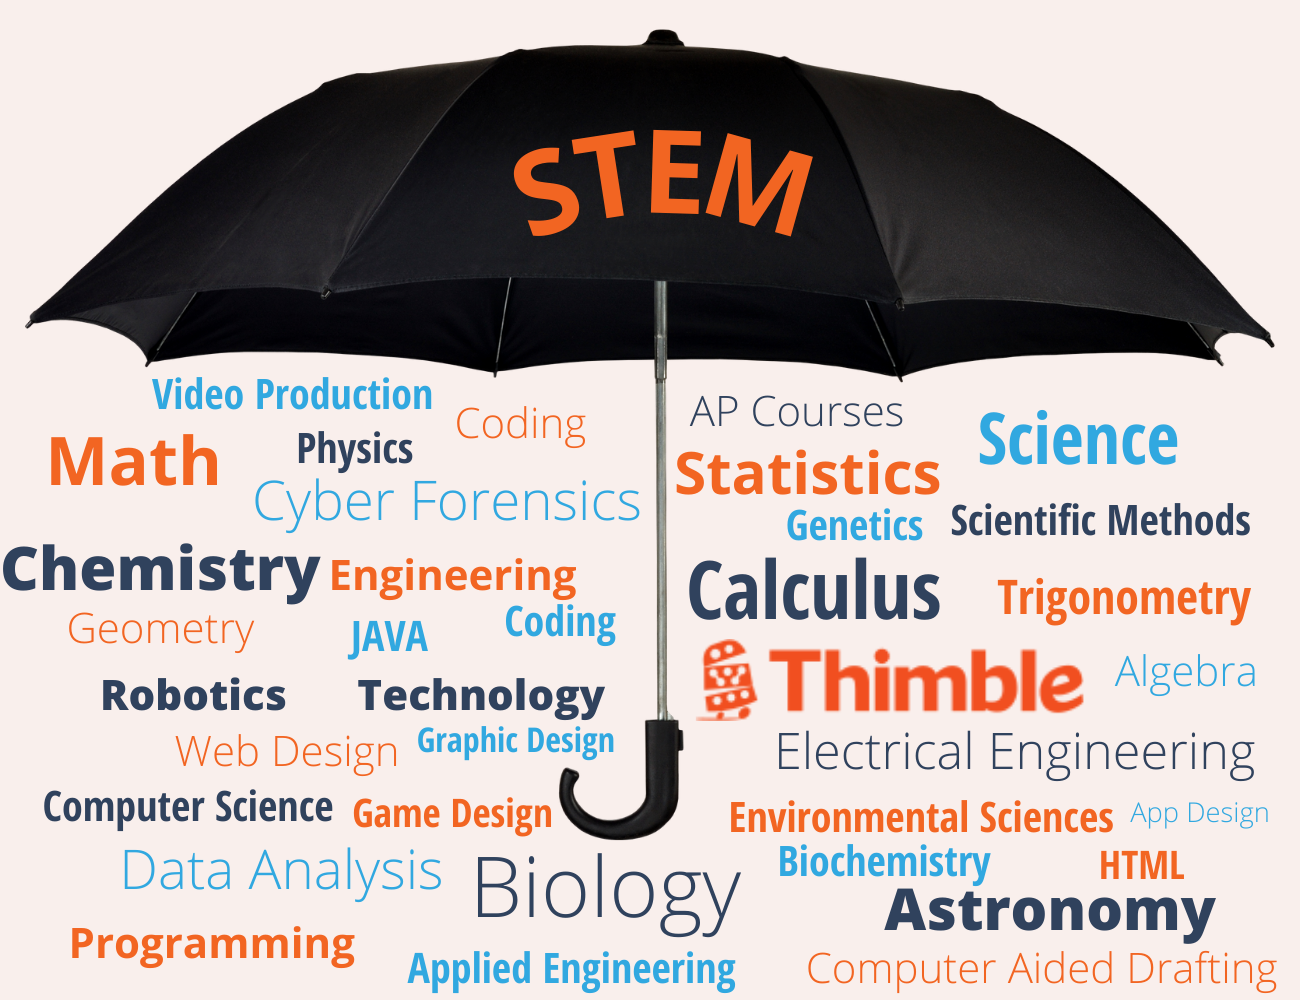 A large umbrella with the word STEM written on it. Underneath of the umbrella is a list of STEM courses including: video production, coding, physics, math, cyber forensics, chemistry, engineering, JAVA, Geometry, Coding, Robotics, Technology, Graphic Design, Web Design, Computer Science, Game Design, Data Analysis, Biology, Applied Engineering, Programming, AP Courses, Statistics, Science, Genetics, Scientific Methods, Trigonometry, Calculus, Thimble, Electrical Engineering, Algebra, App Design, Environmental Sciences, HTML, Biochemistry, Astronomy, and Computer Aided Drafting